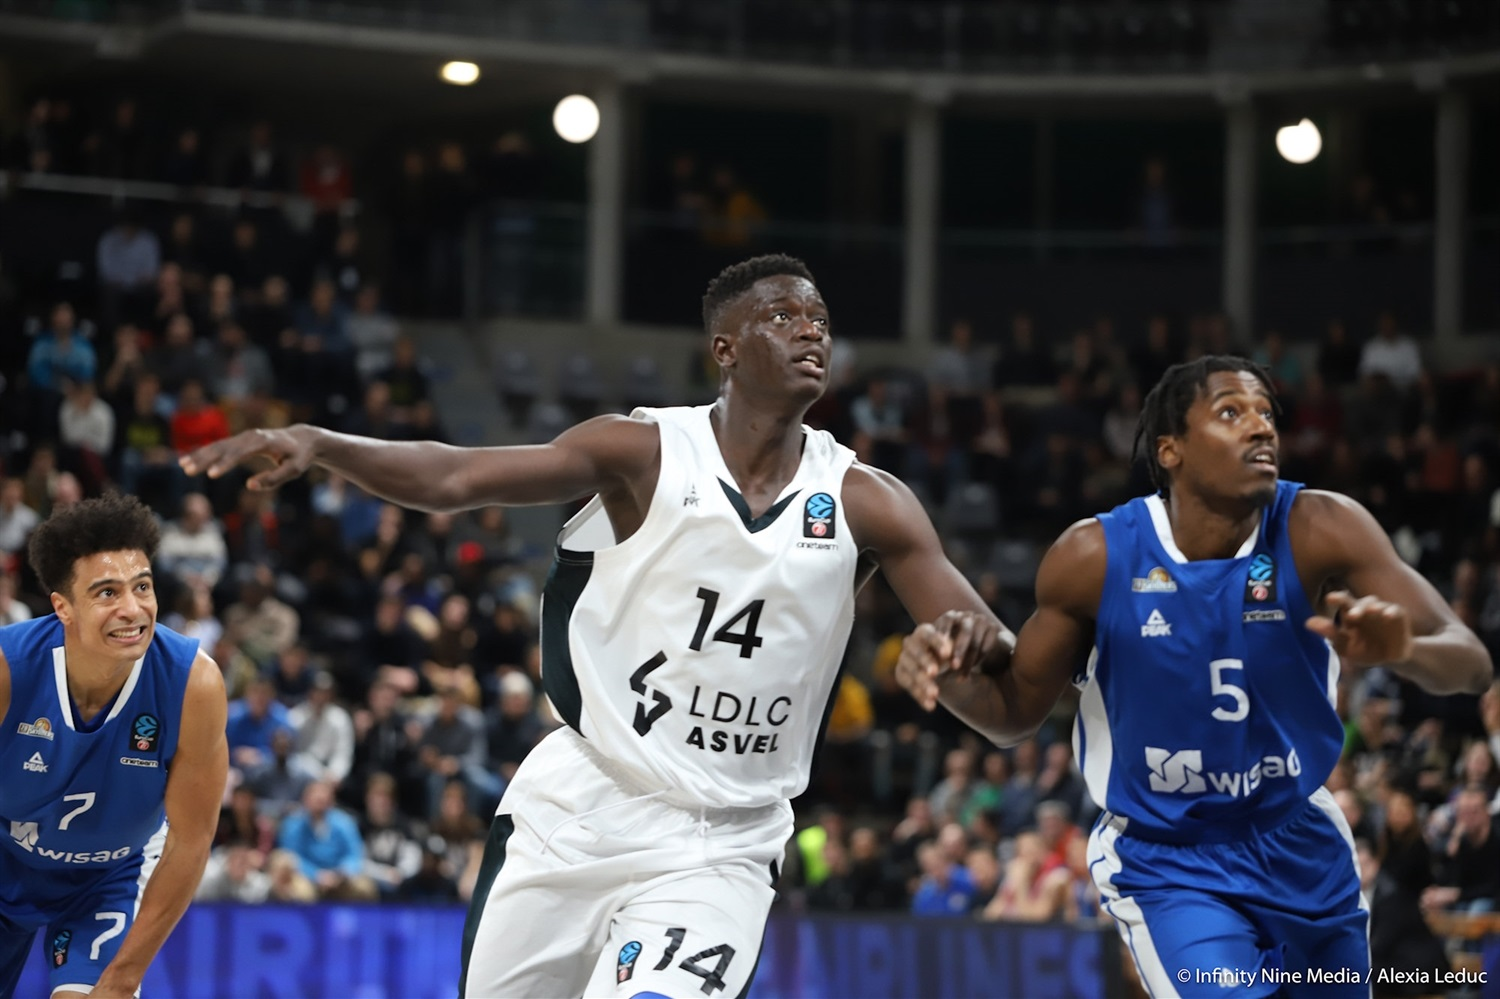 Khadim Sow - LDLC ASVEL Villeurbanne (photo Infinity Nine Media - Alexia Leduc) - EC18